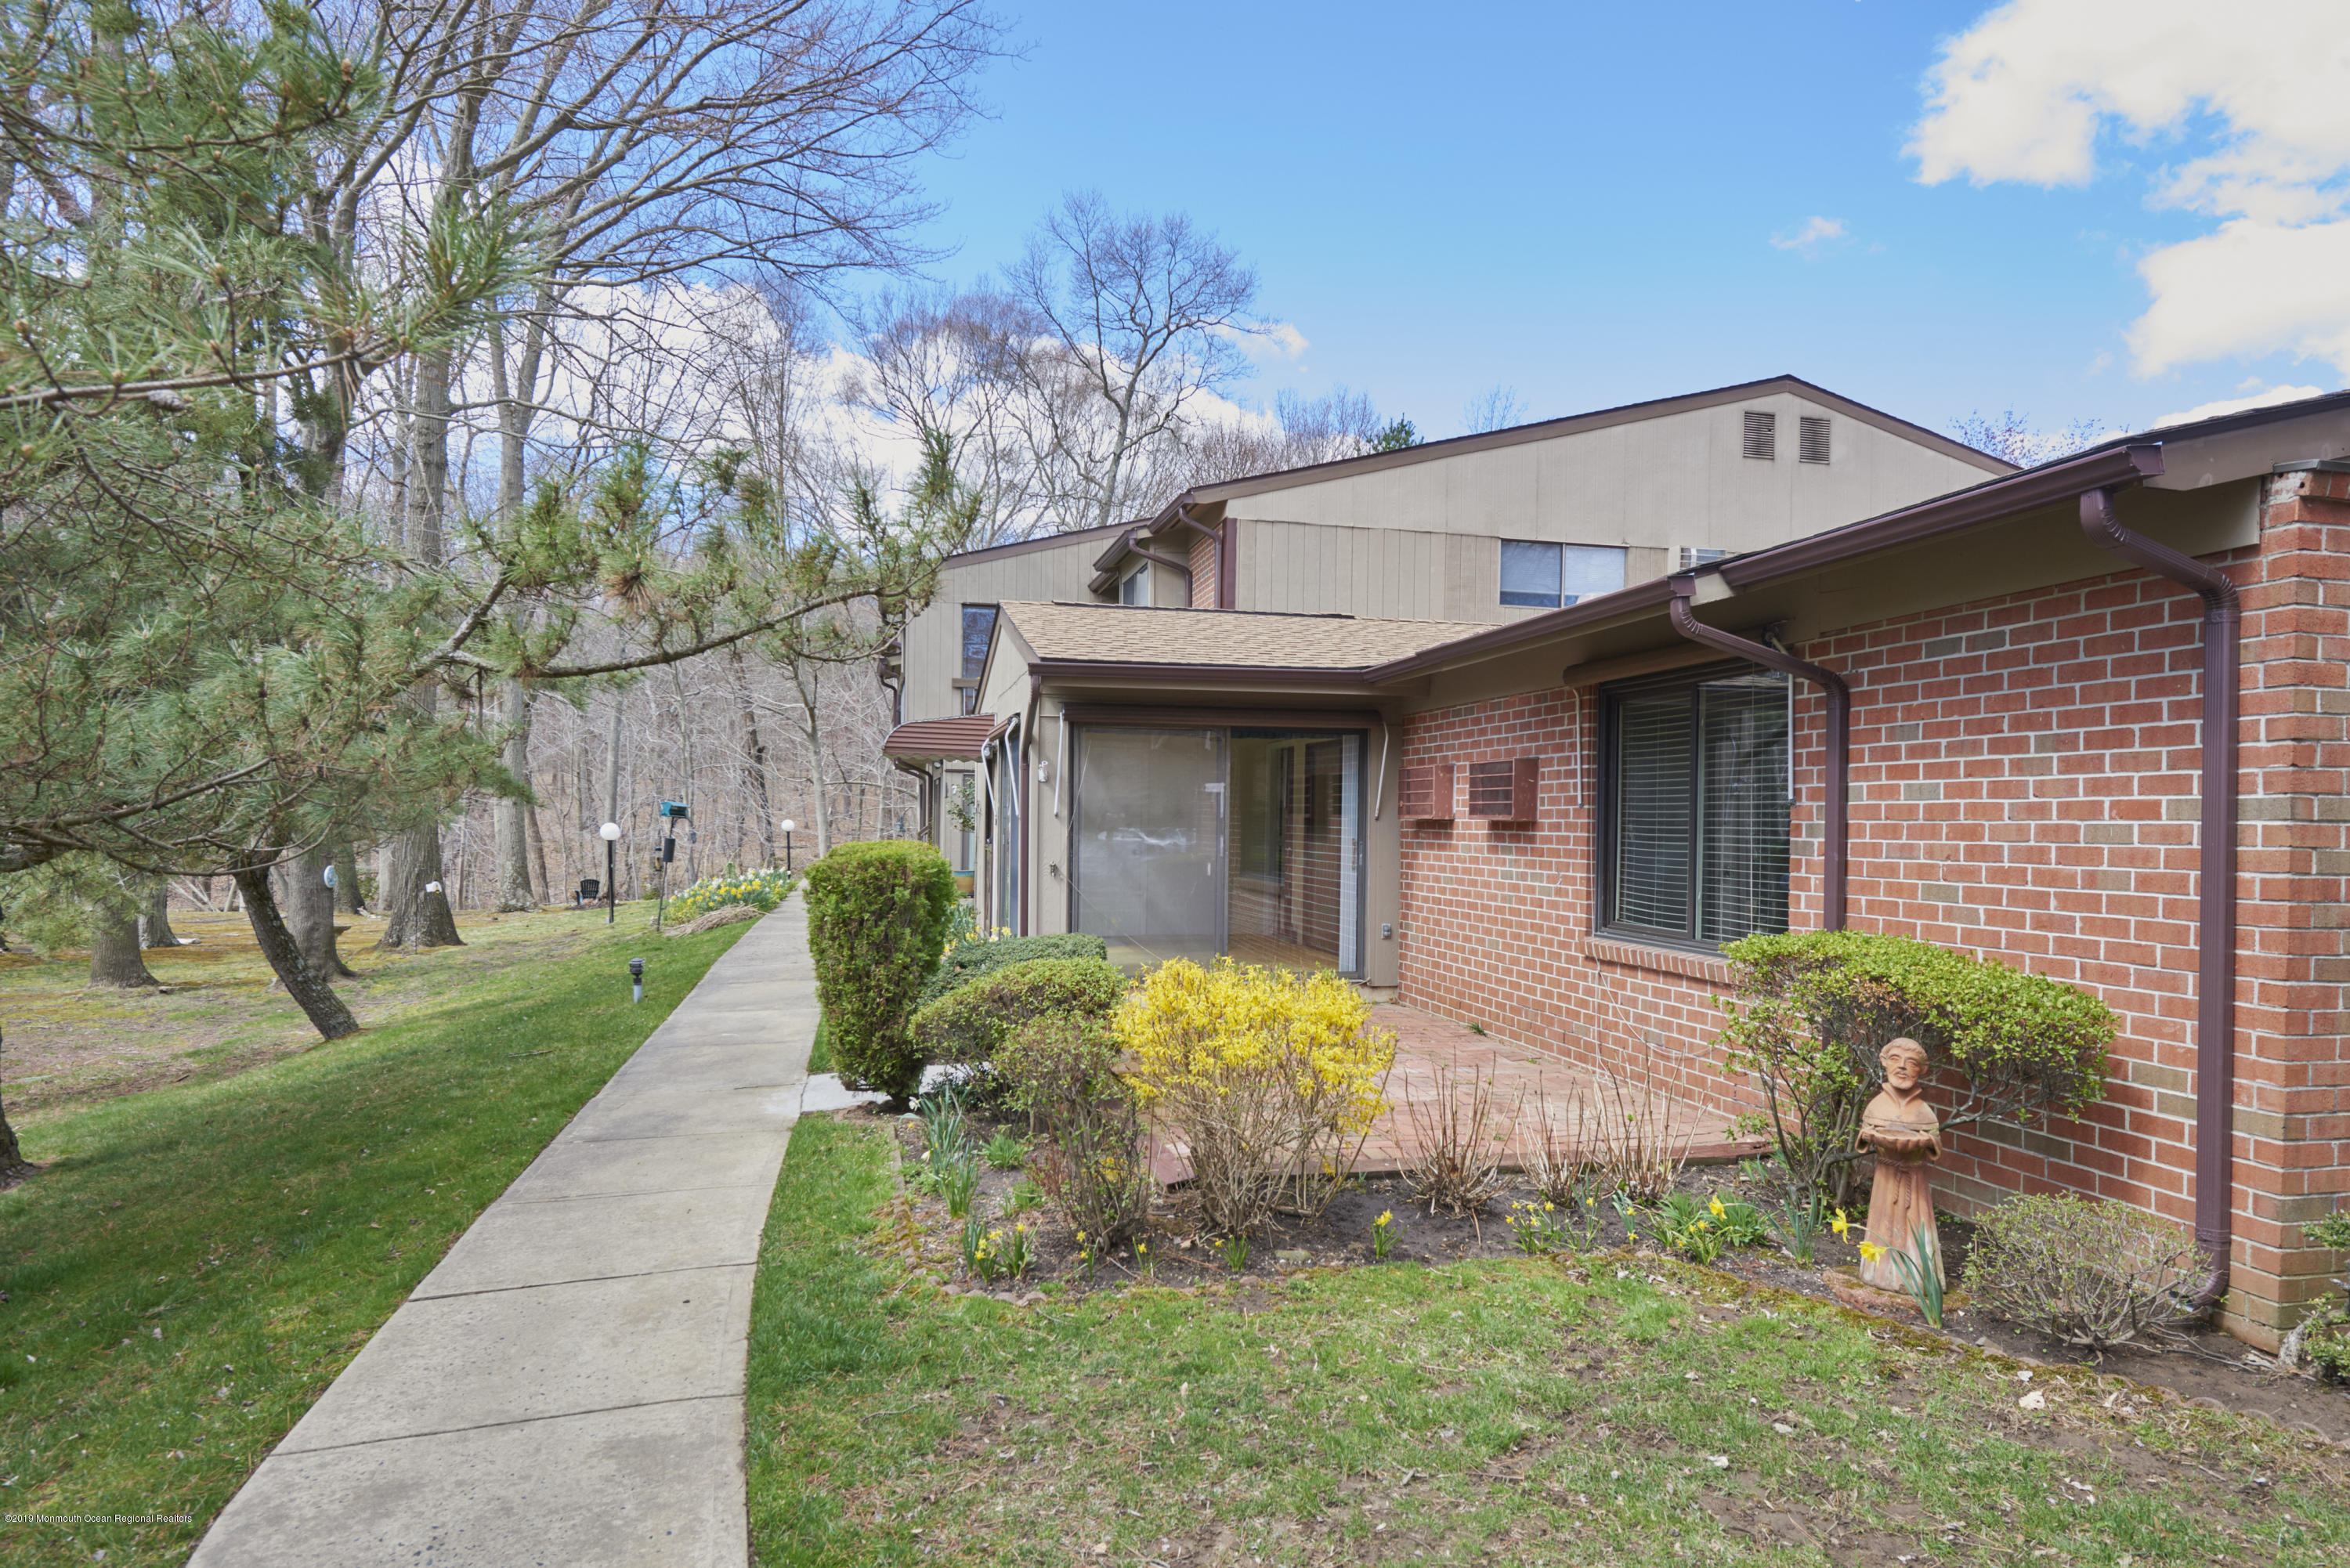 Photo of 9 Western Reach, Red Bank, NJ 07701